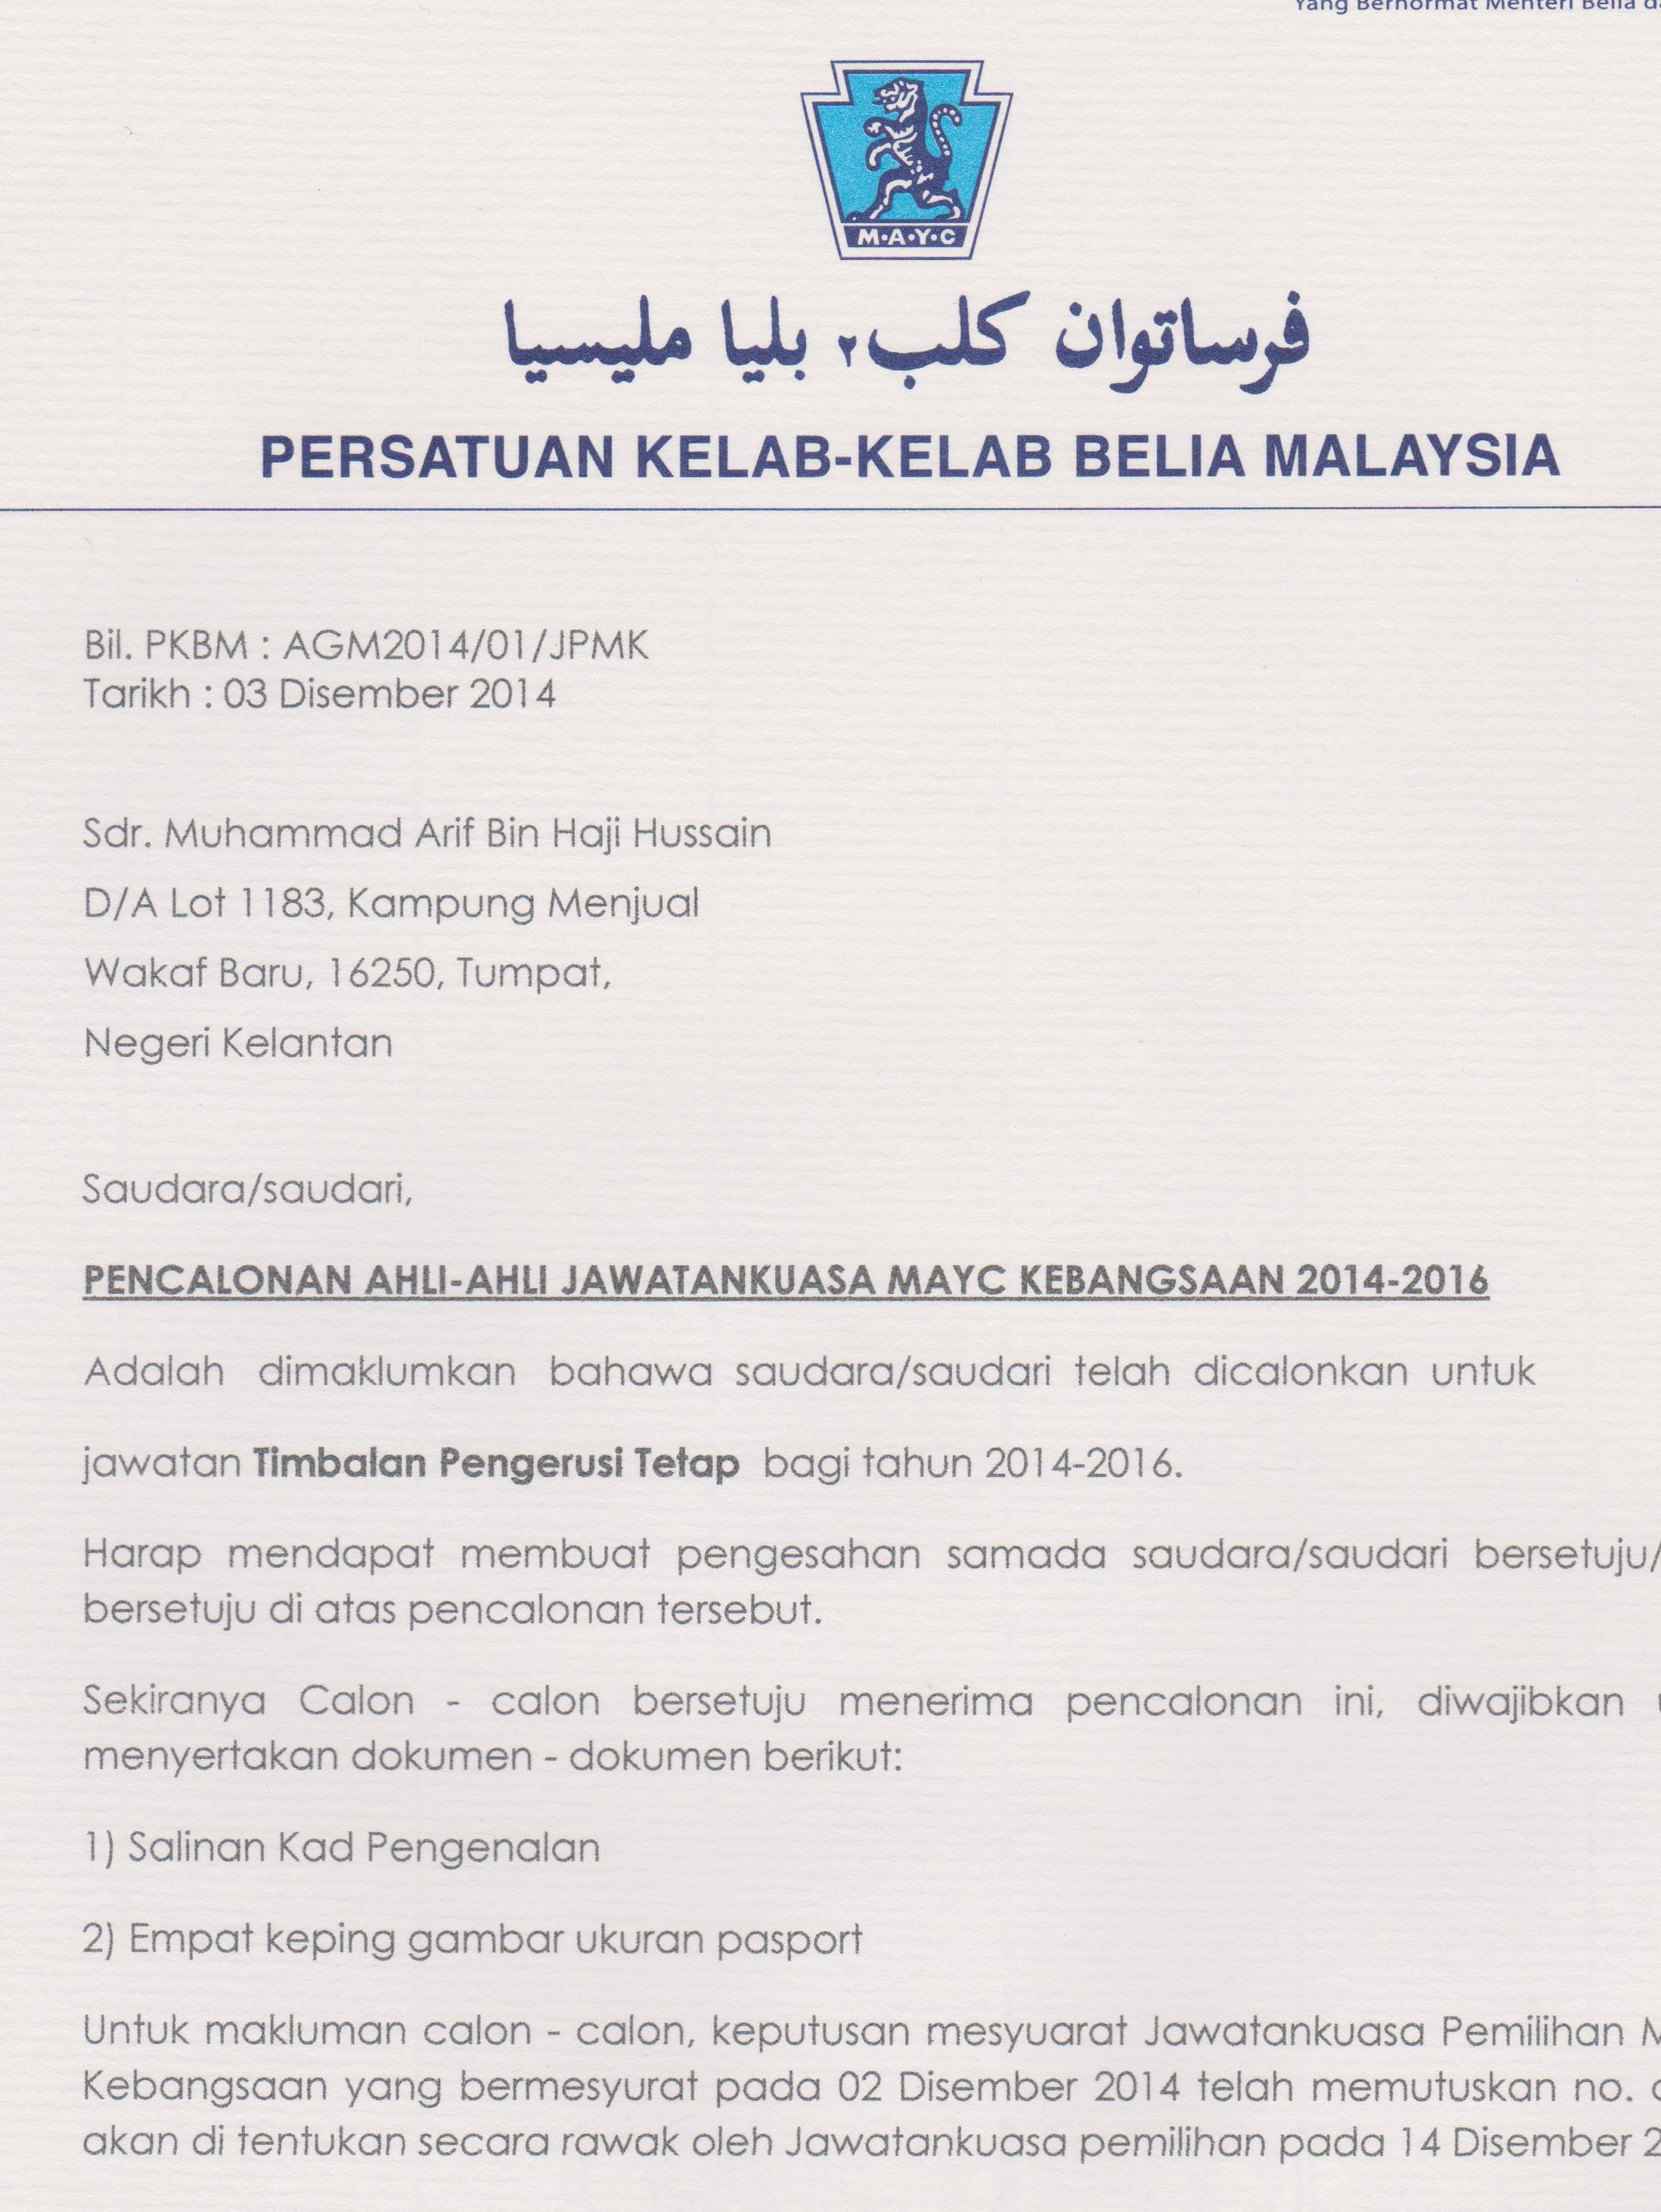 Translate Any Document From Malay To English Or English To Malay By Amexleo